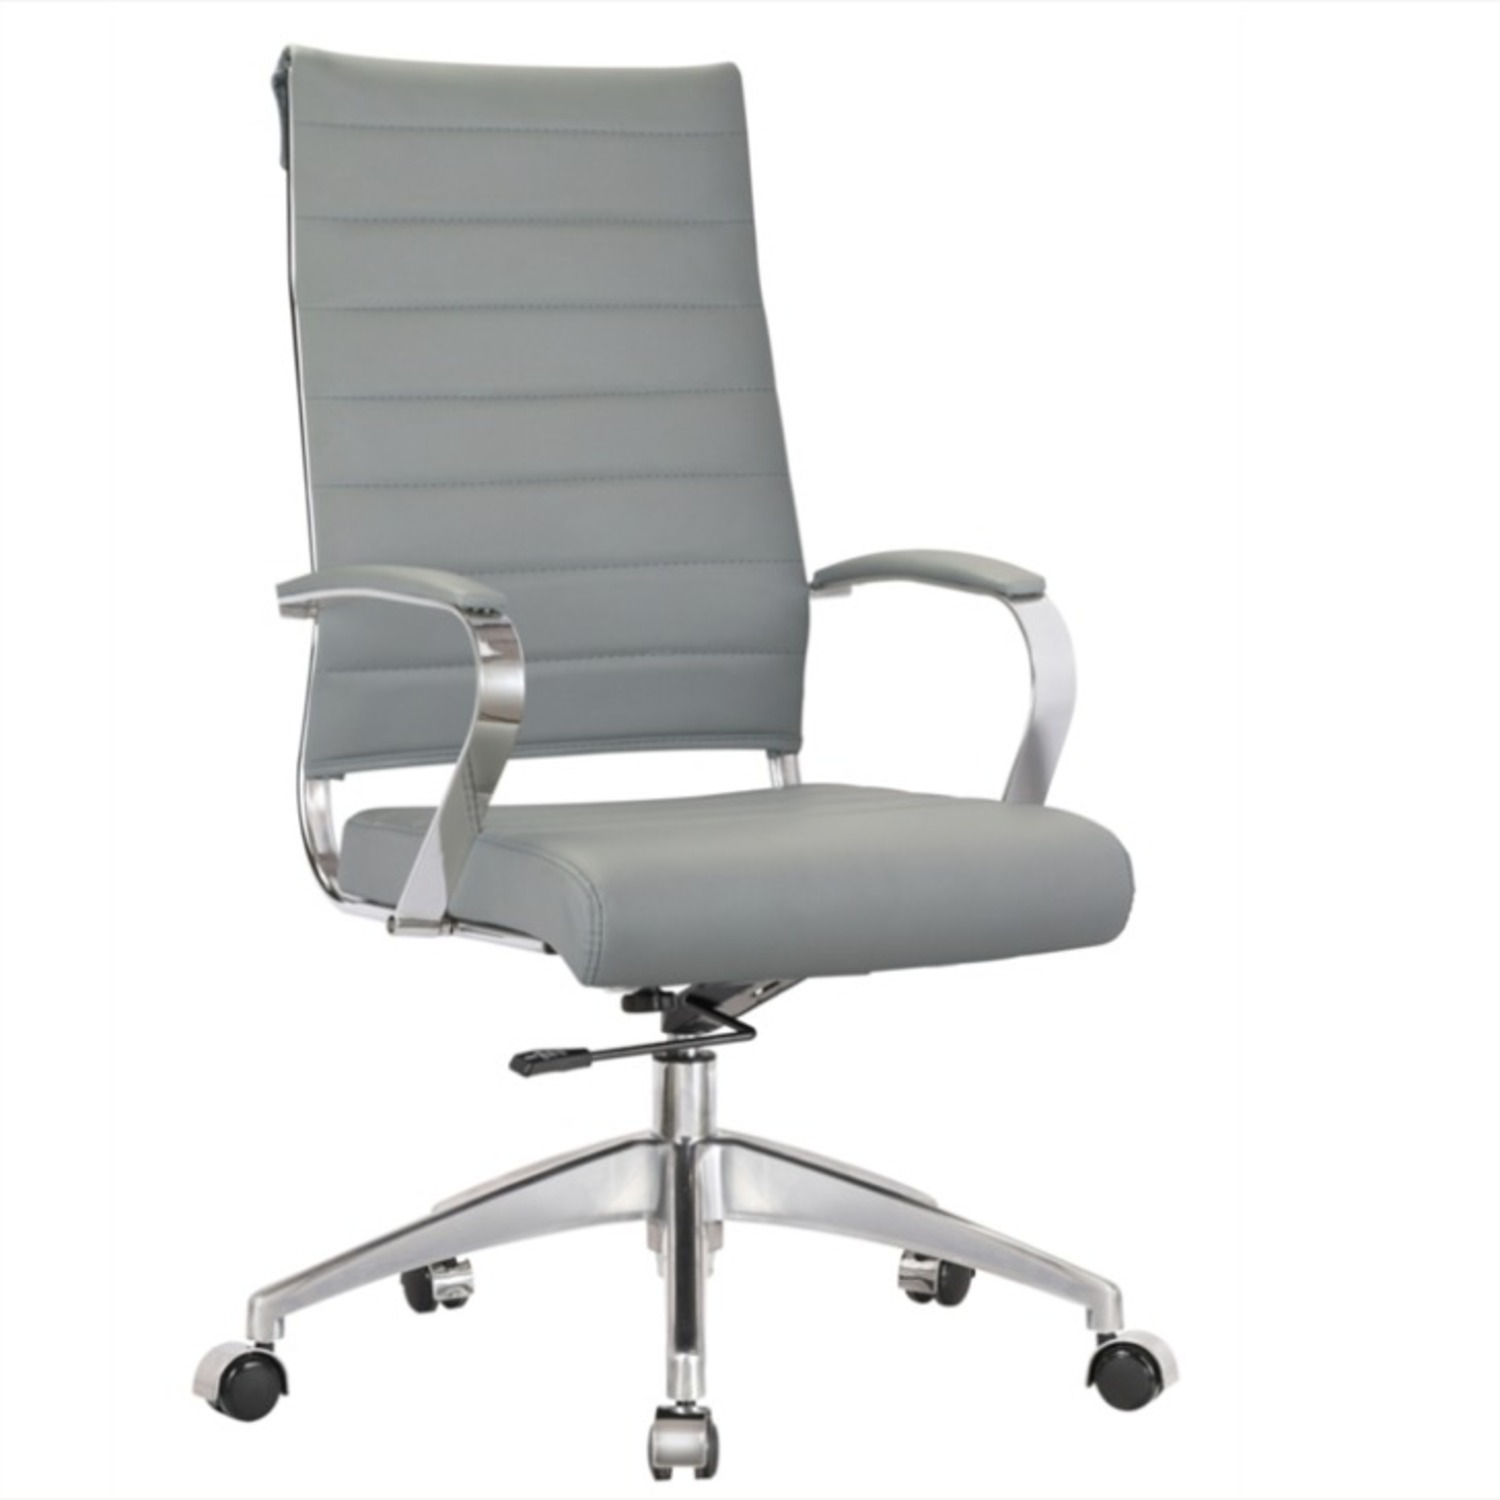 Office Chair W/ High Back Seat In Grey Leather - image-2